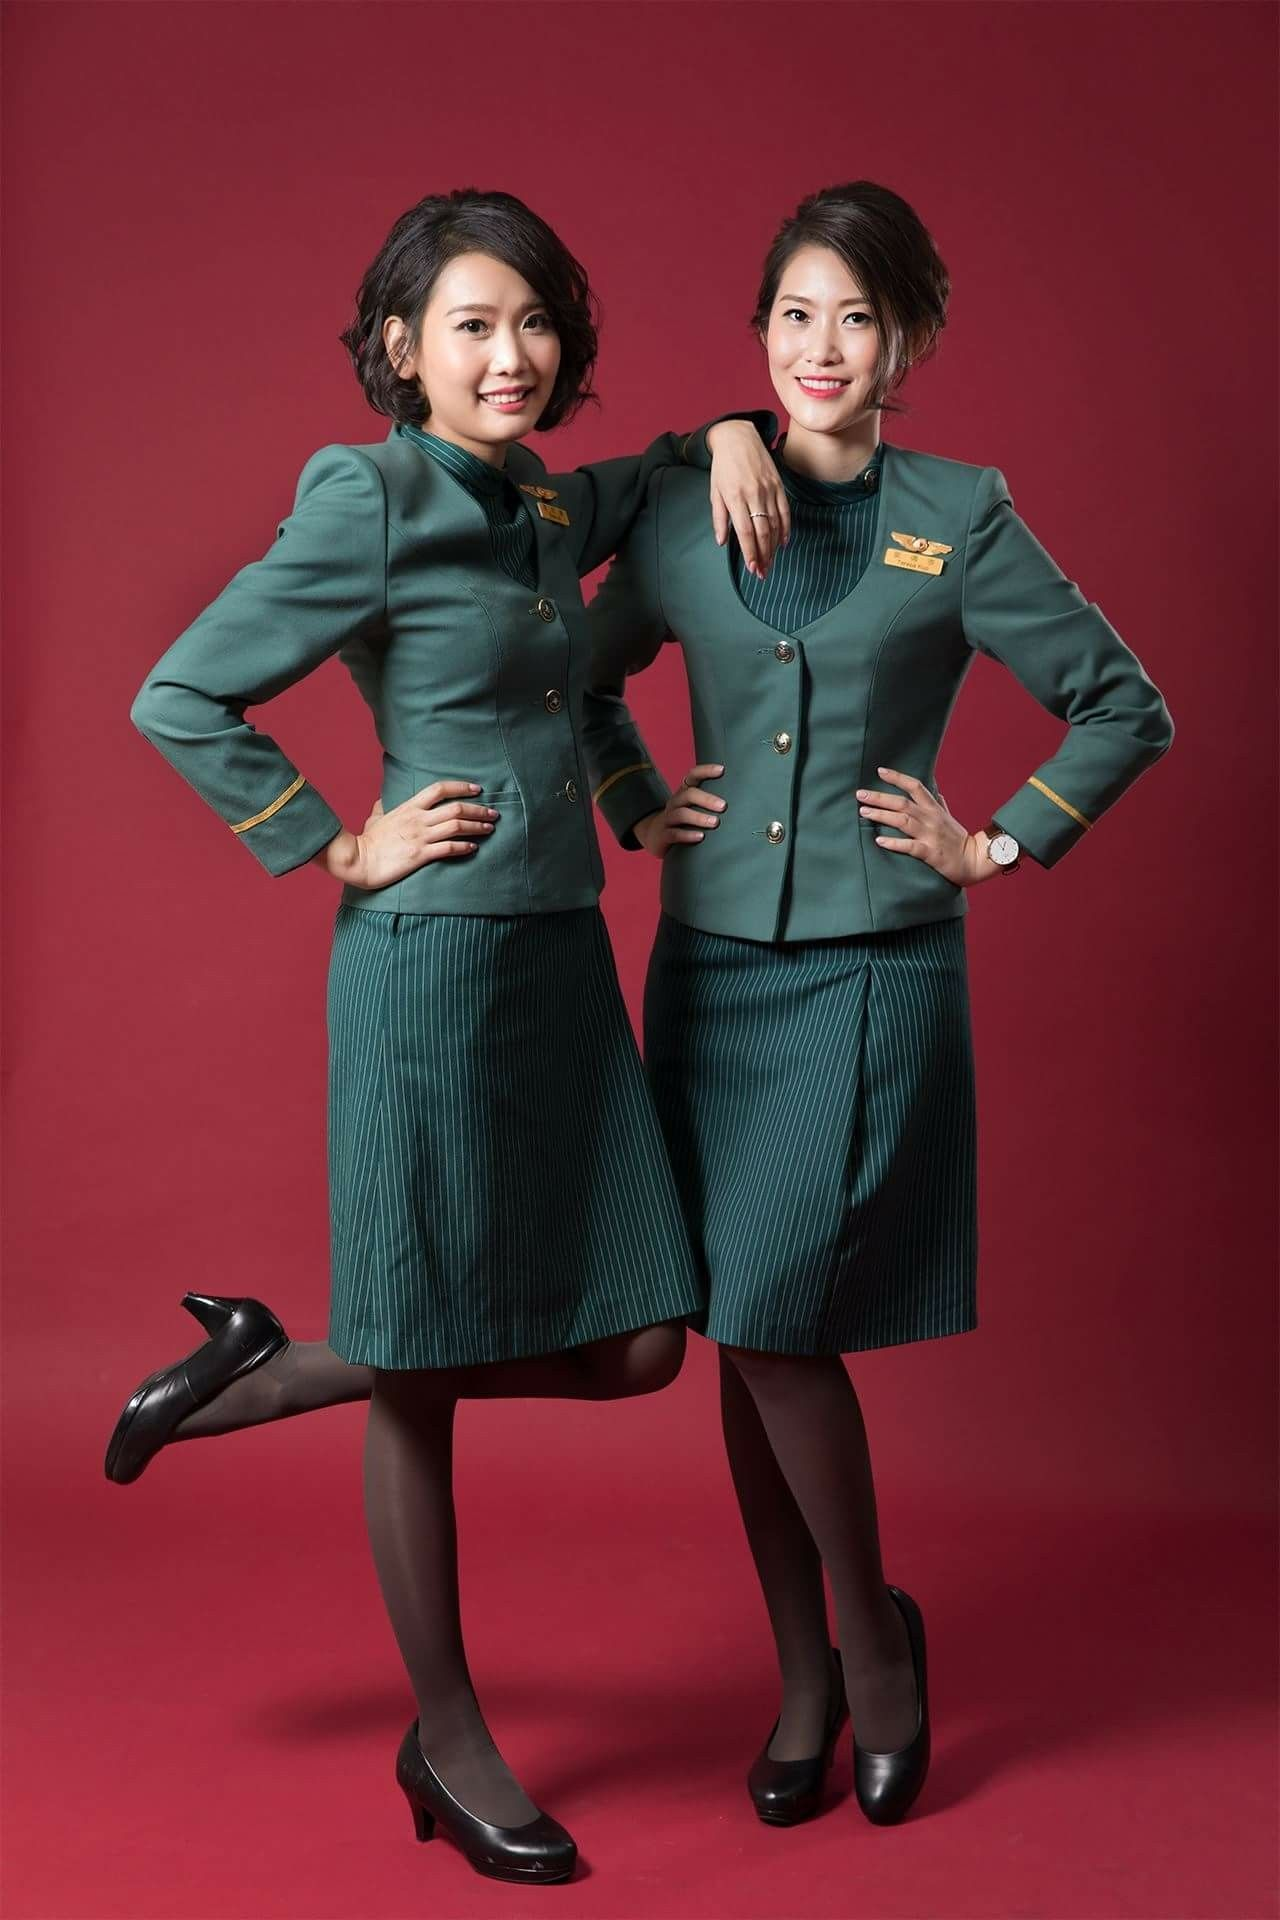 Pin by Jeff Lye on Cabin crew | Flight attendant, Airline ...